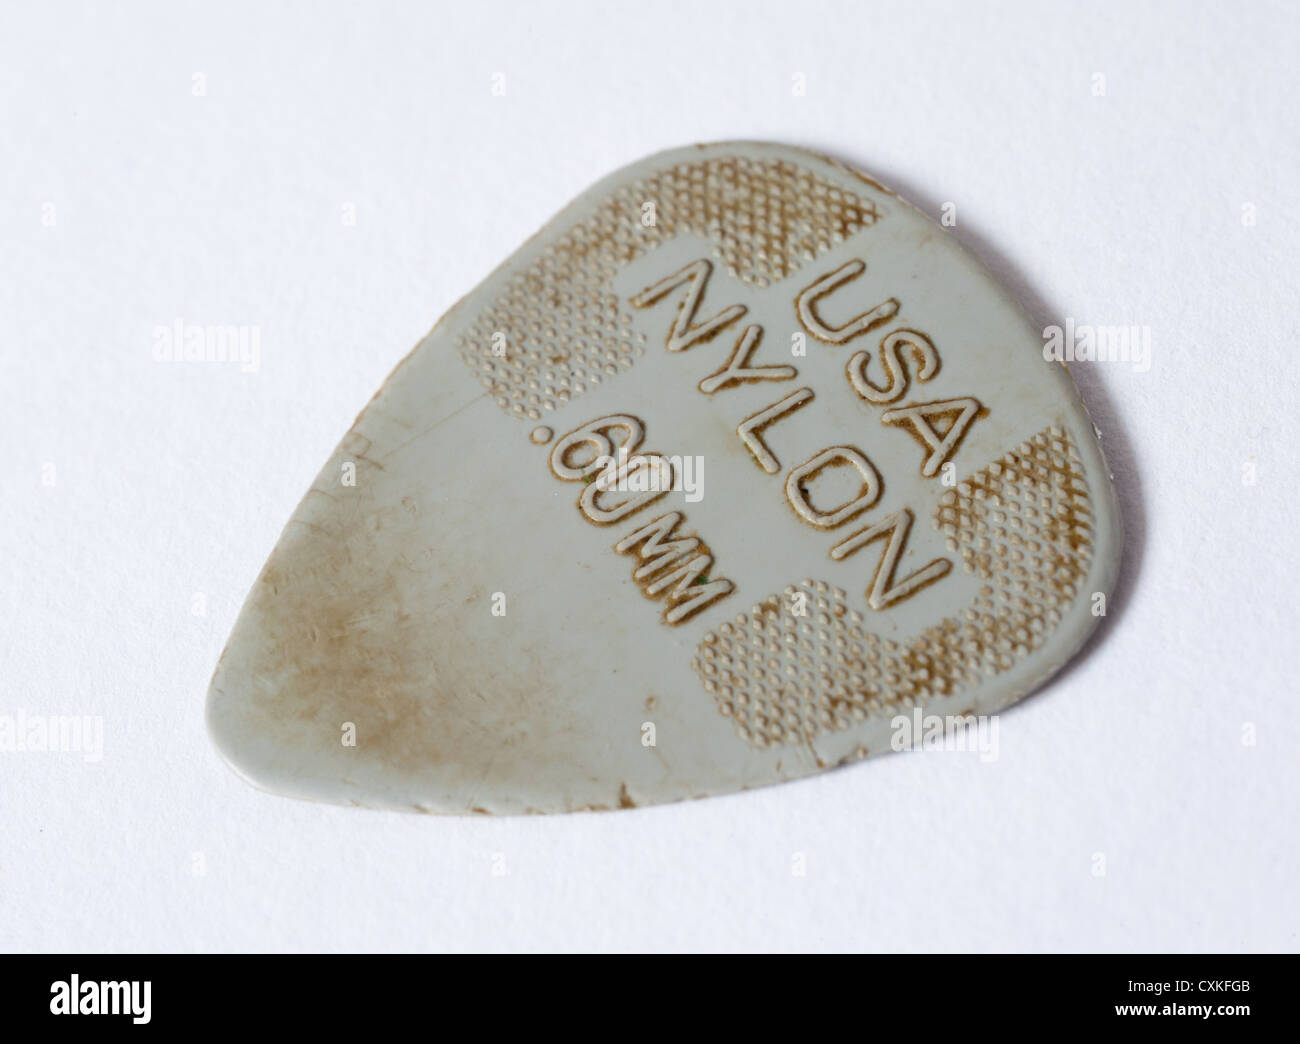 A Close Up View Of Worn Guitar Pick